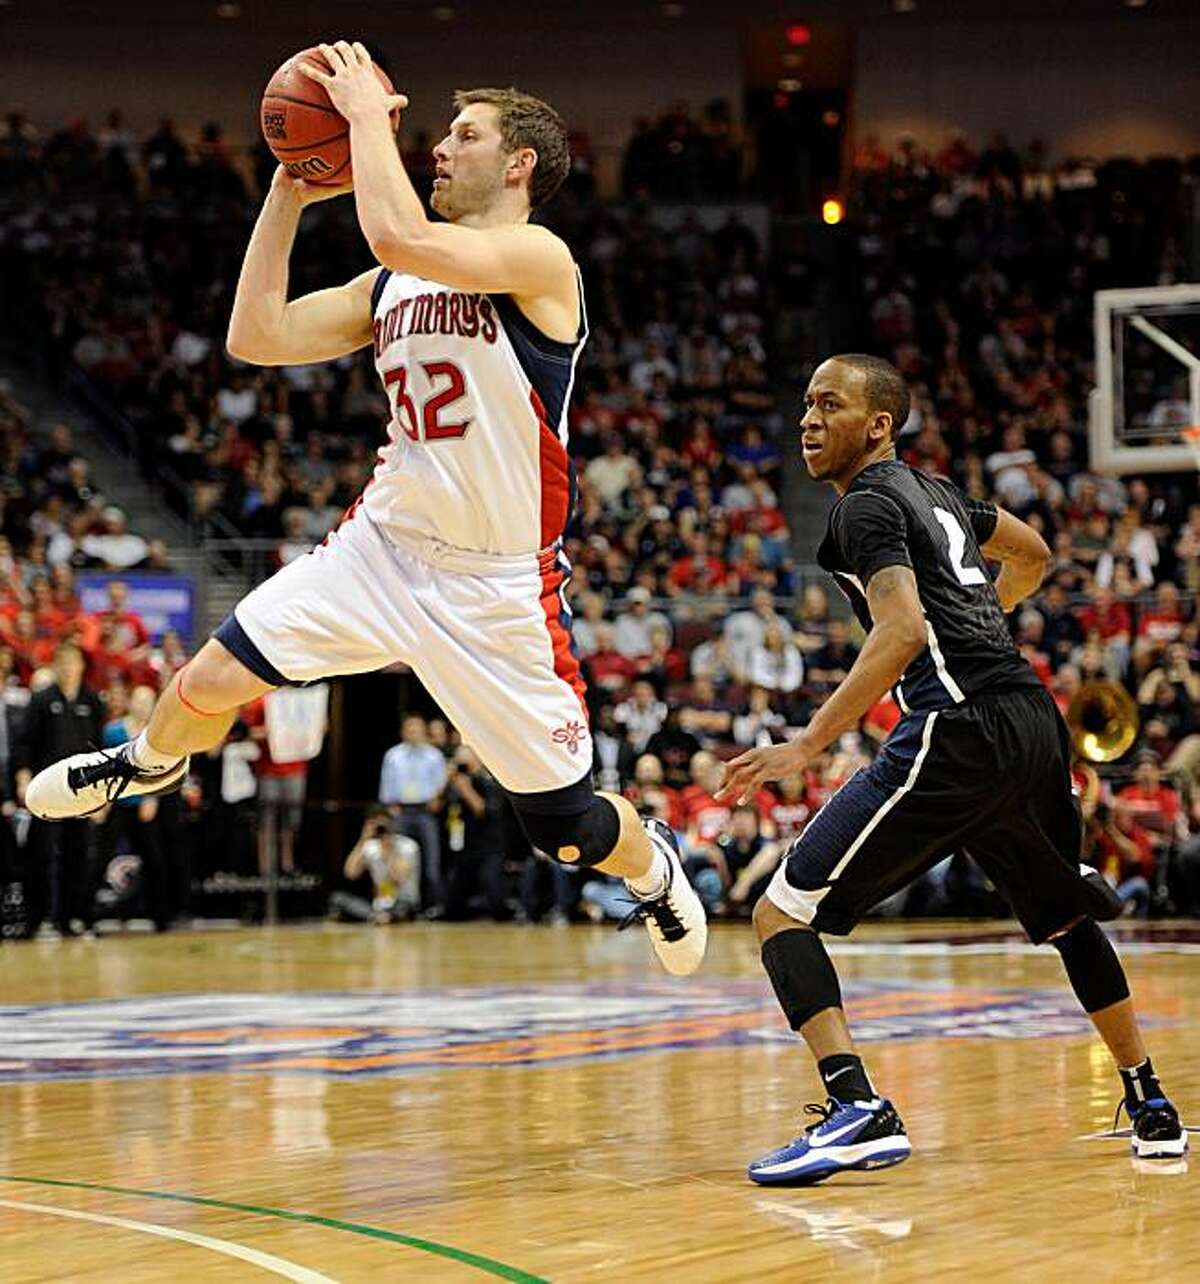 Mickey McConnell of the Saint Mary's Gaels shoots in front of Marquise Carter of the Gonzaga Bulldogs during the championship game of the West Coast Conference tournament at the Orleans Arena on Monday in Las Vegas.